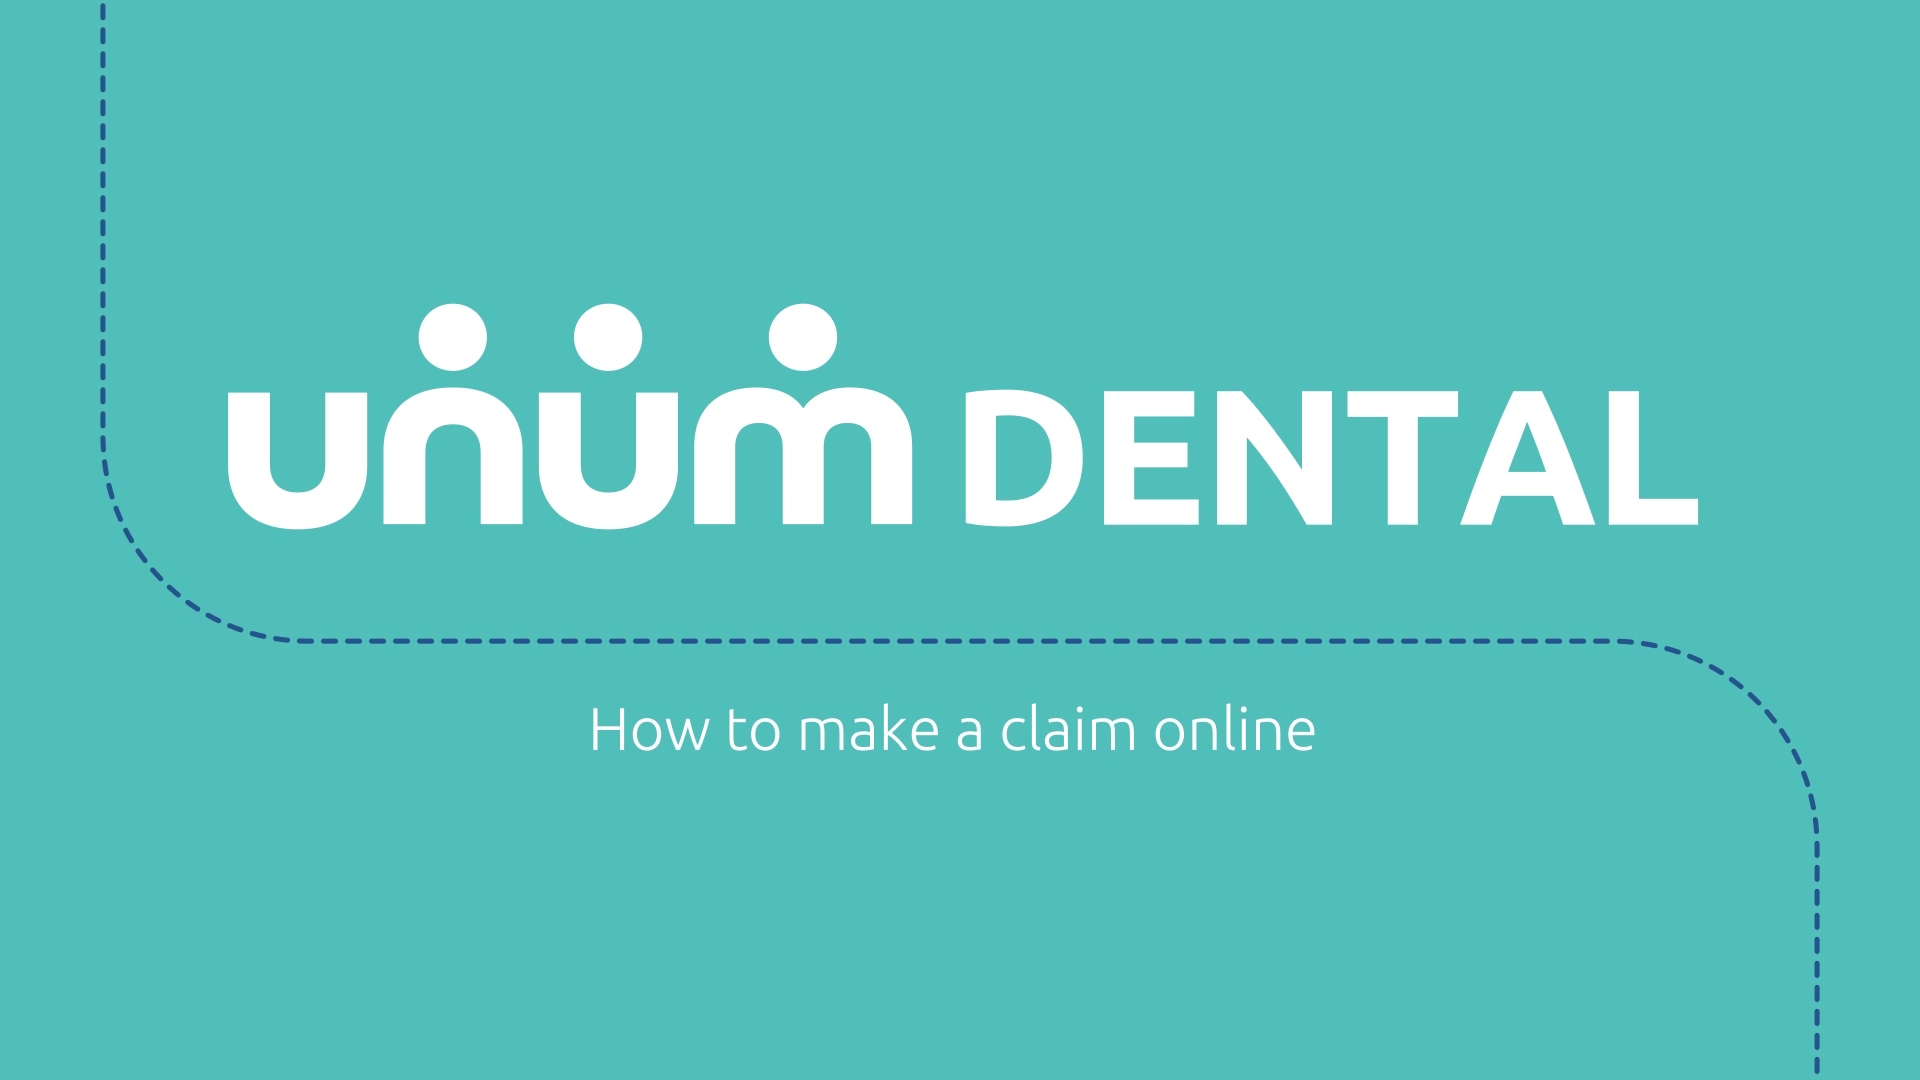 Unum Dental  How to make a claim  Final 2 v1